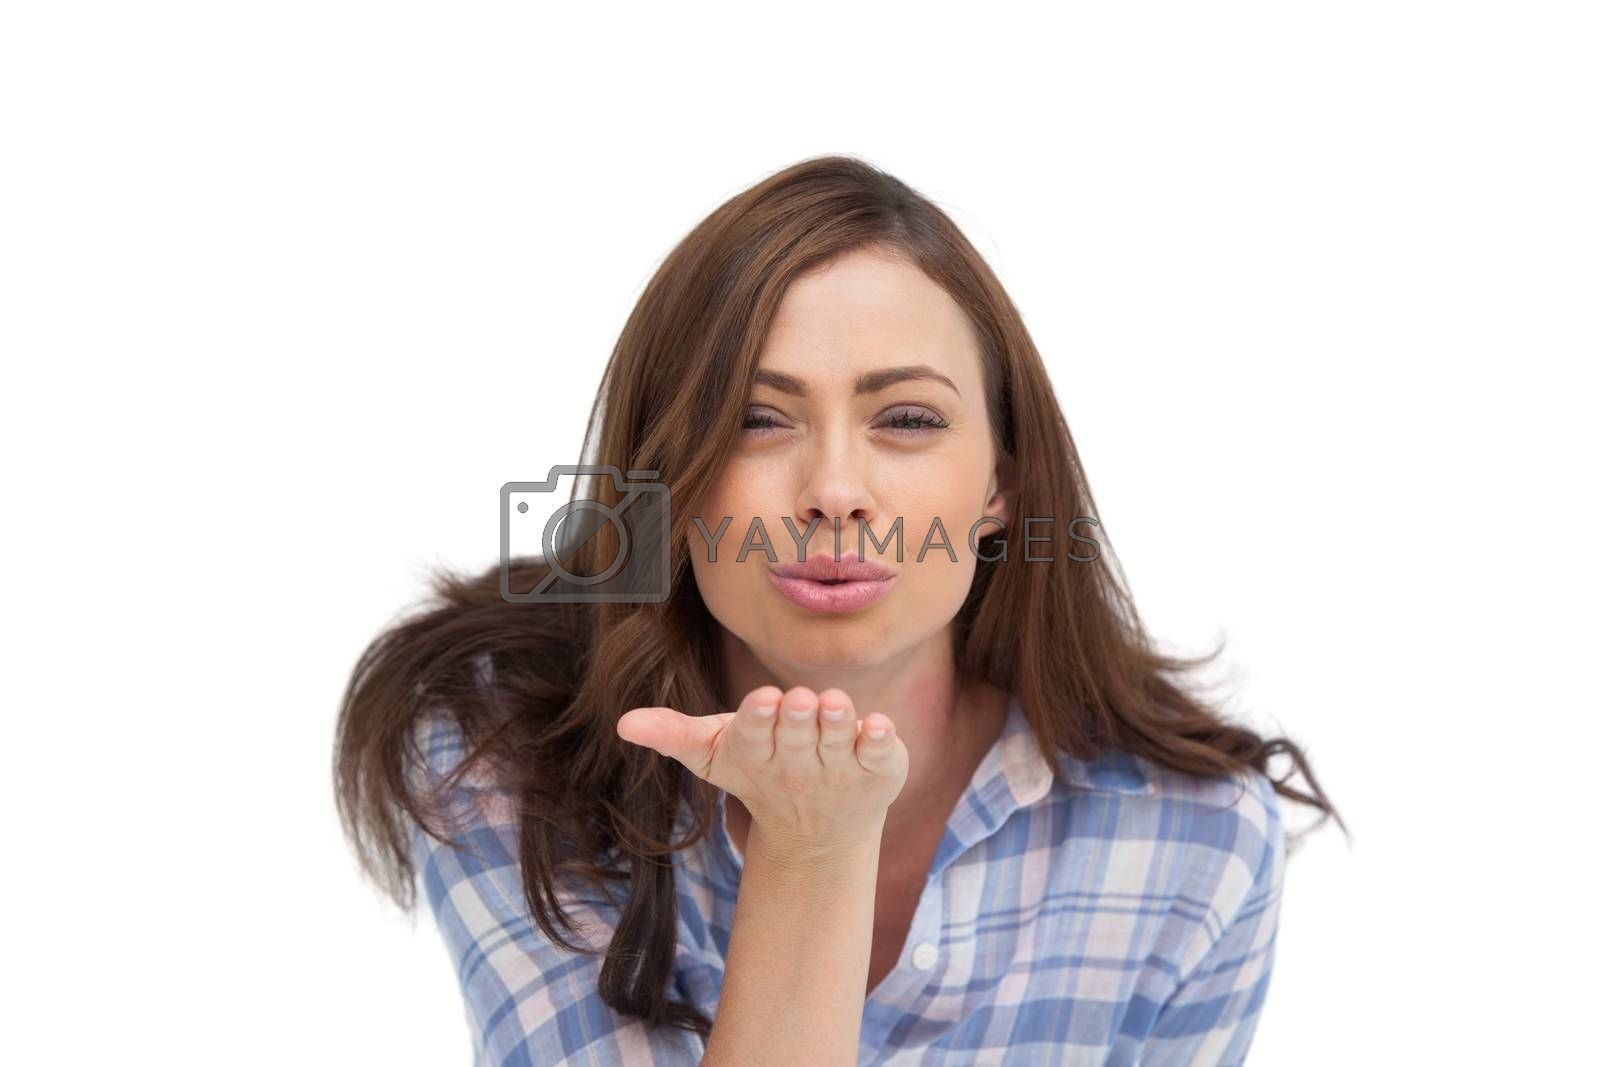 Cute woman blowing a kiss to the camera on white background